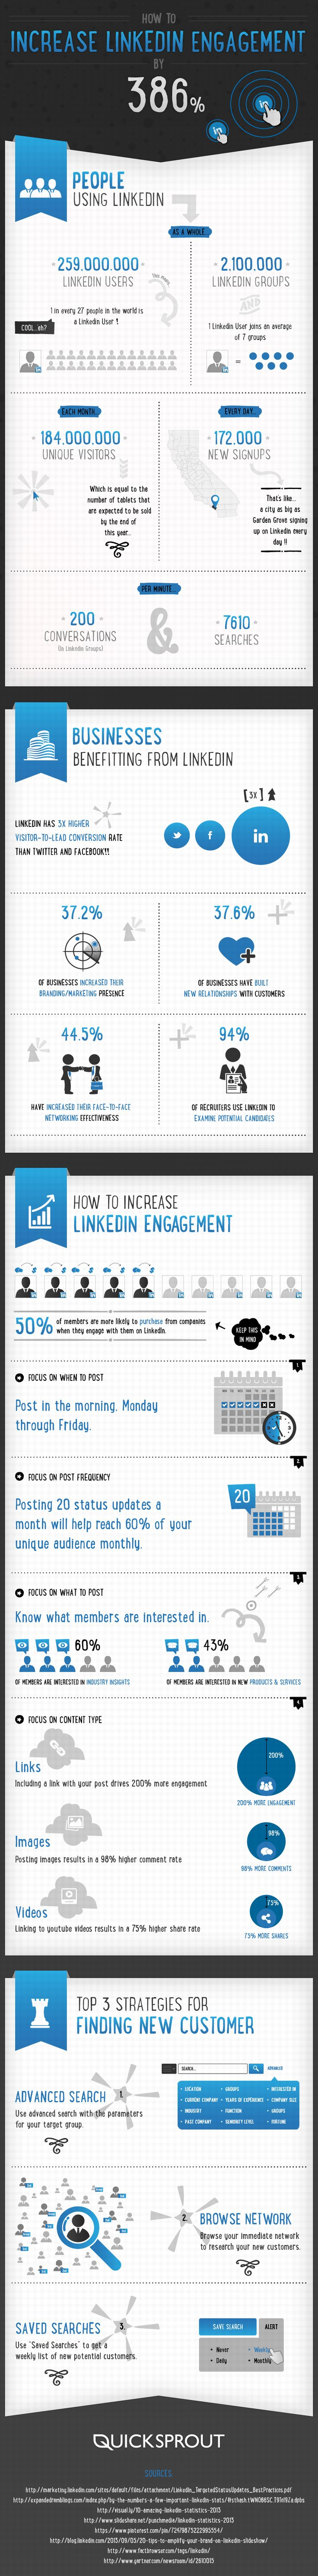 10 Awesome Infographics to Guide your Marketing Plan for 2014